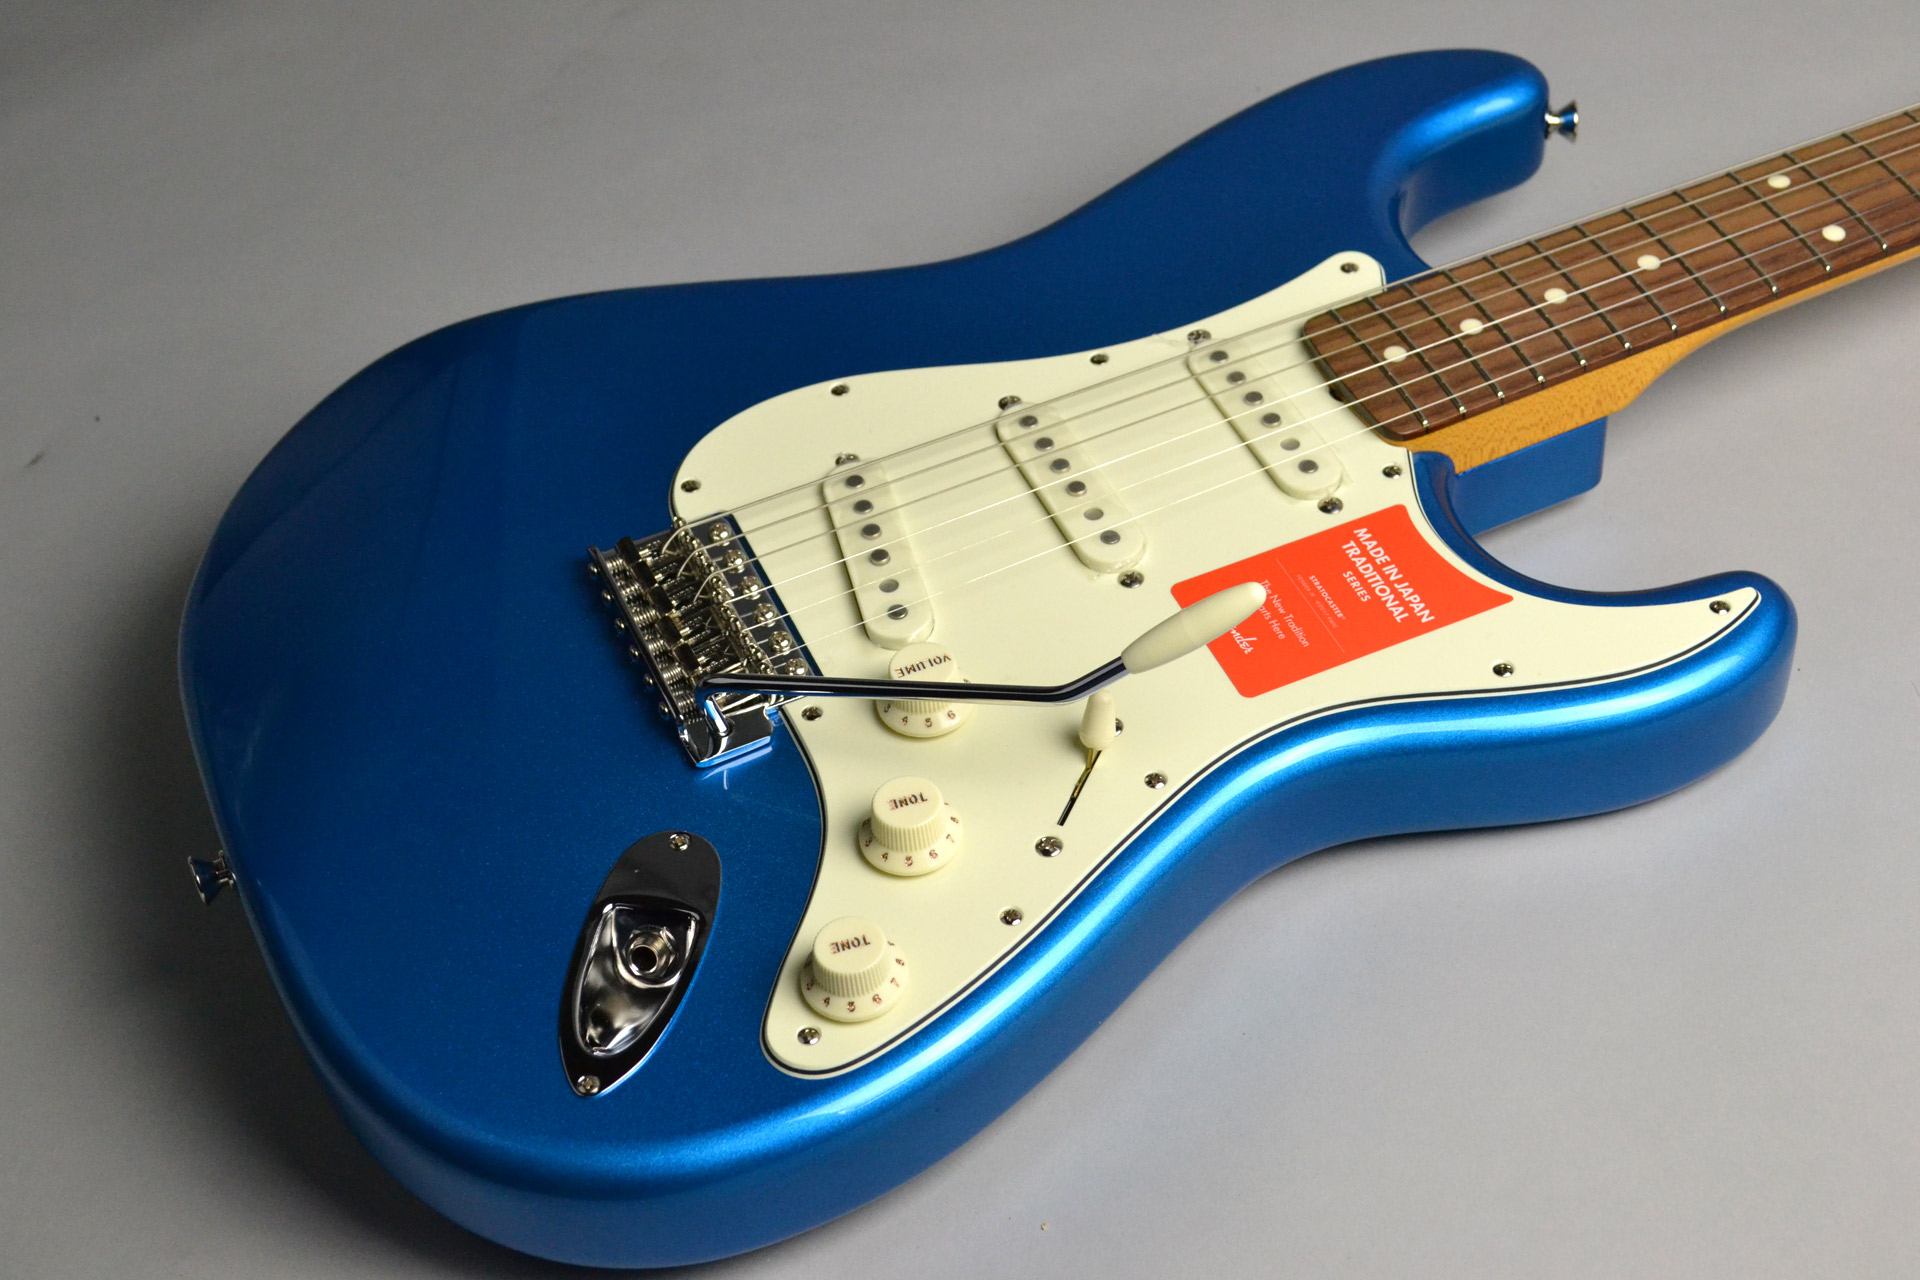 MADE IN JAPAN TRADITIONAL 60S STRATOCASTER Candy Blueのボディトップ-アップ画像